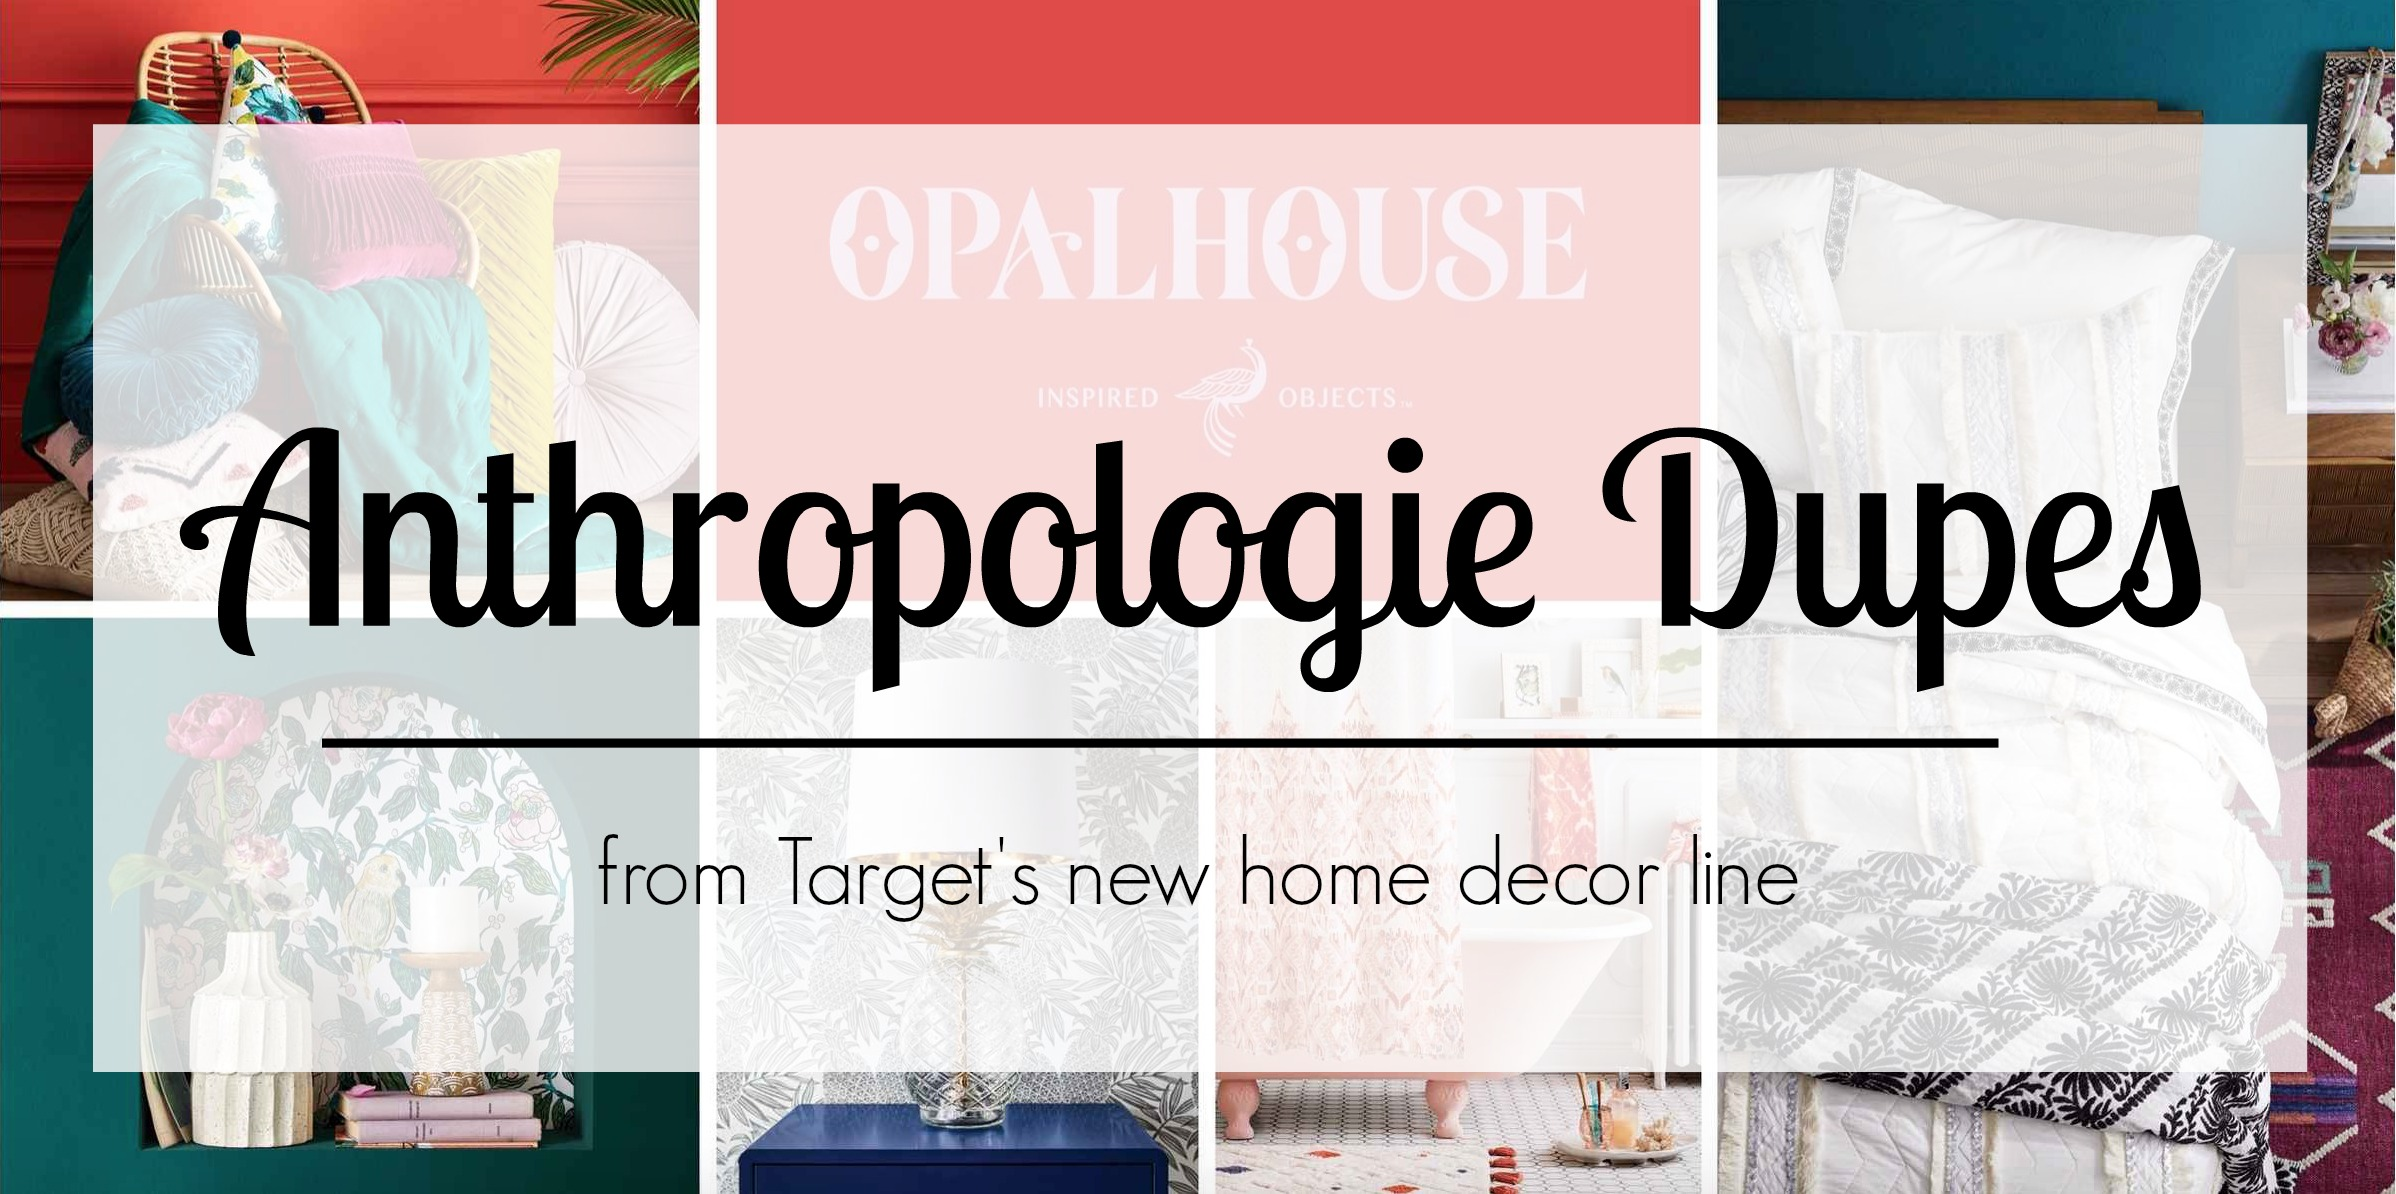 Anthropologie Dupes for Target's Opalhouse